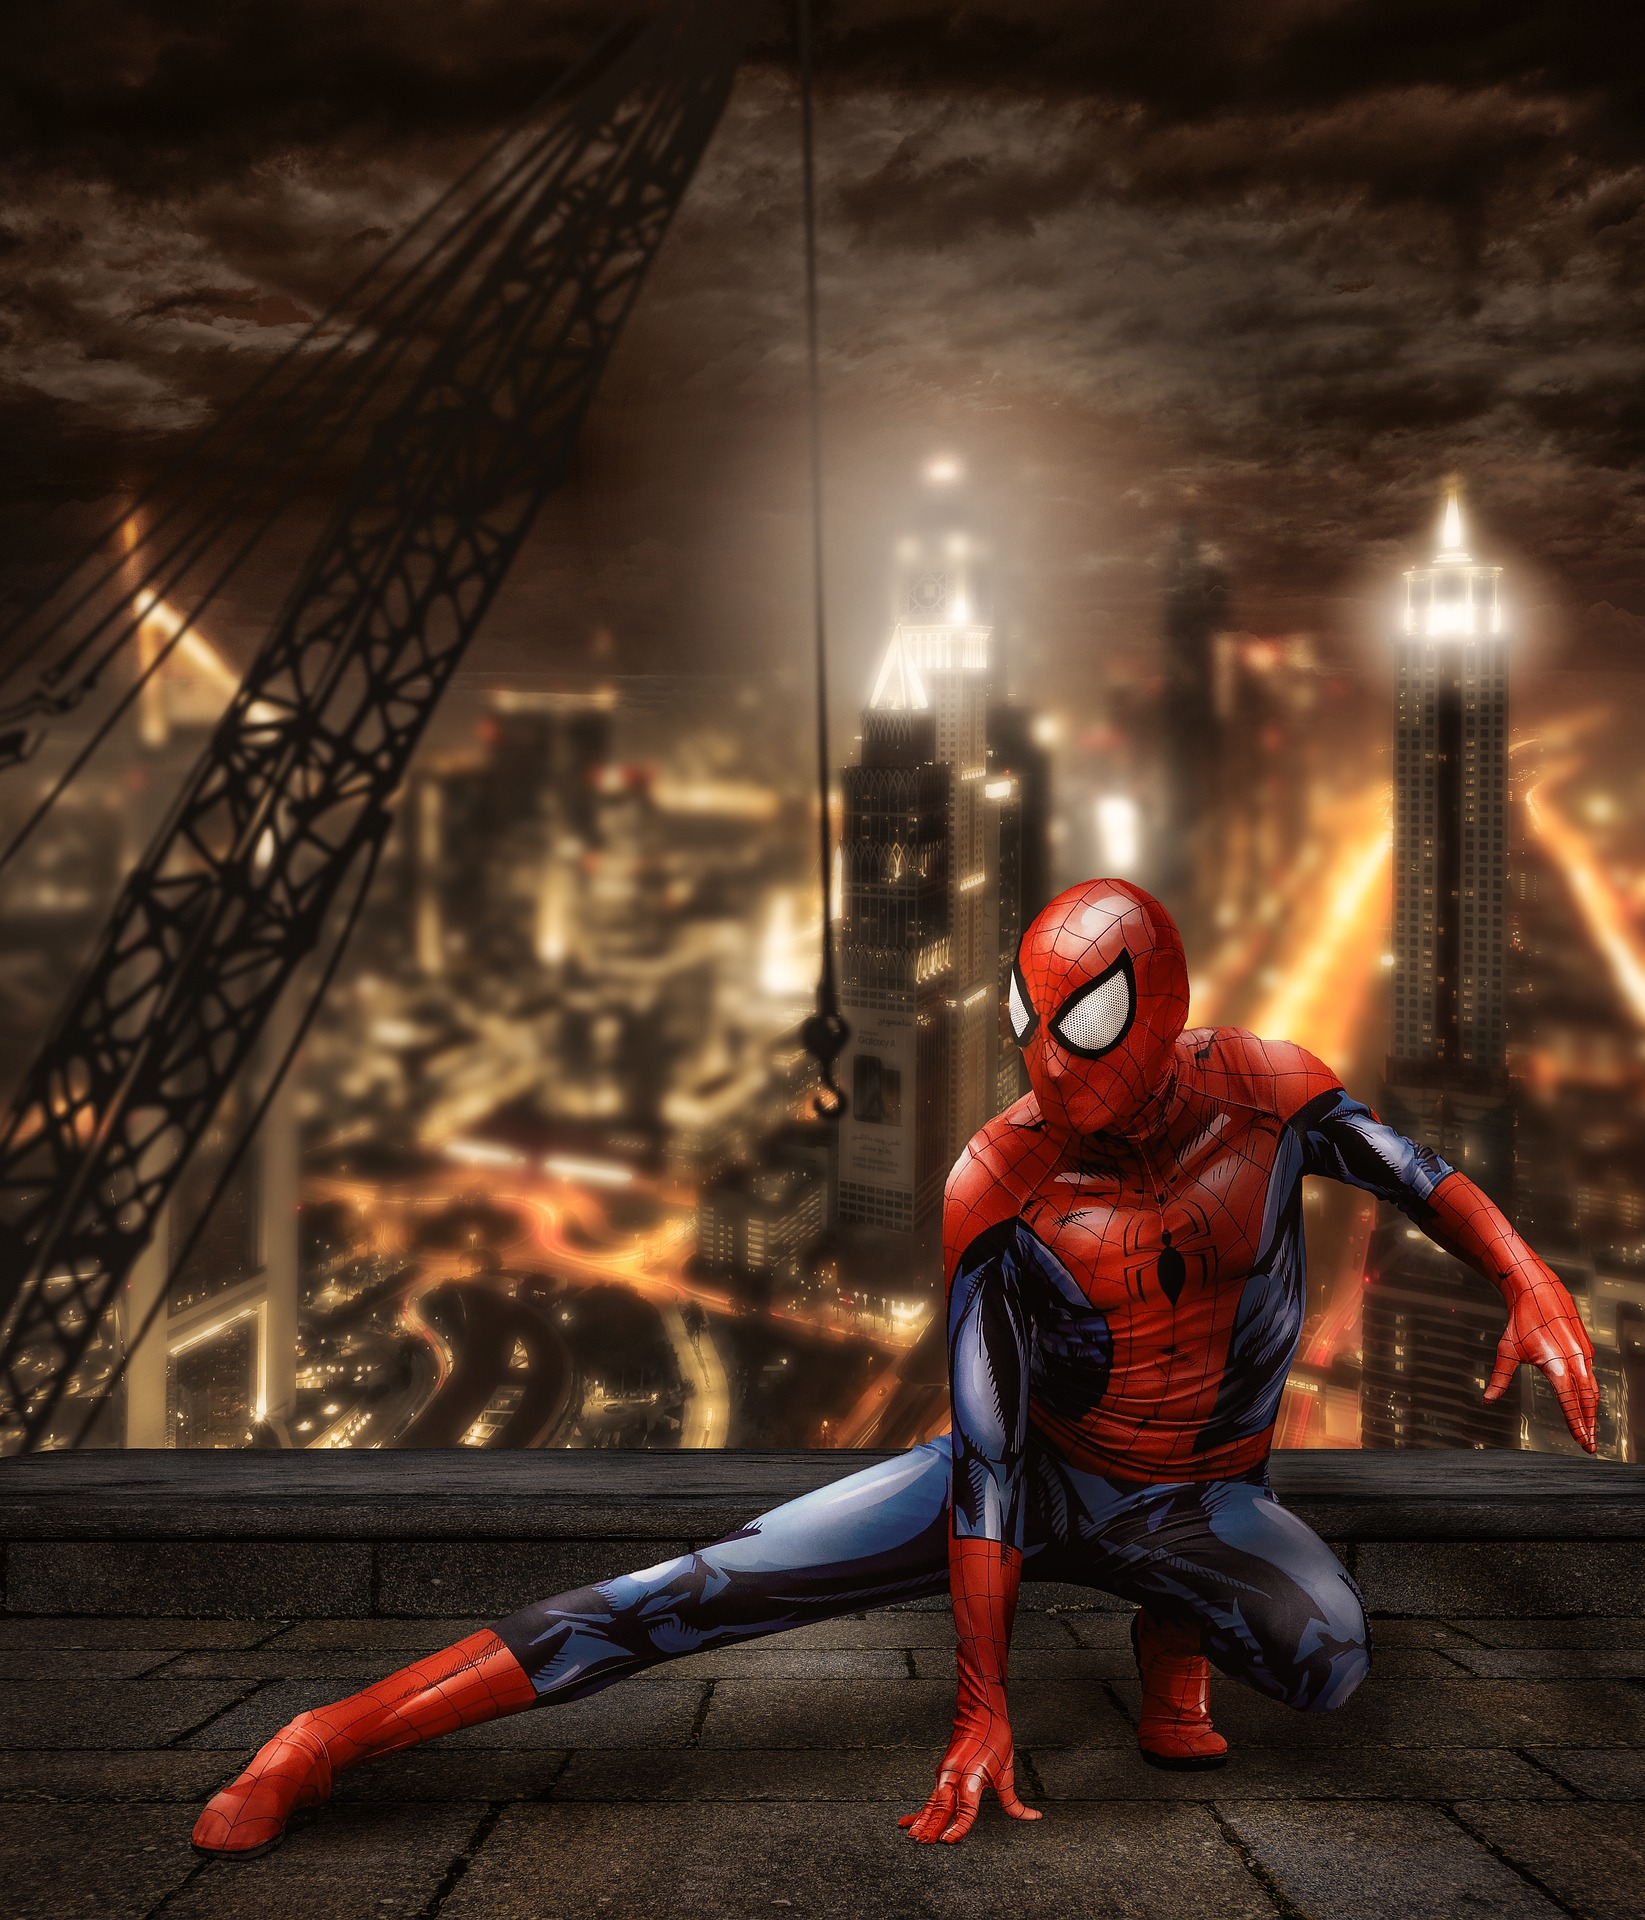 spiderman-3378544_1920